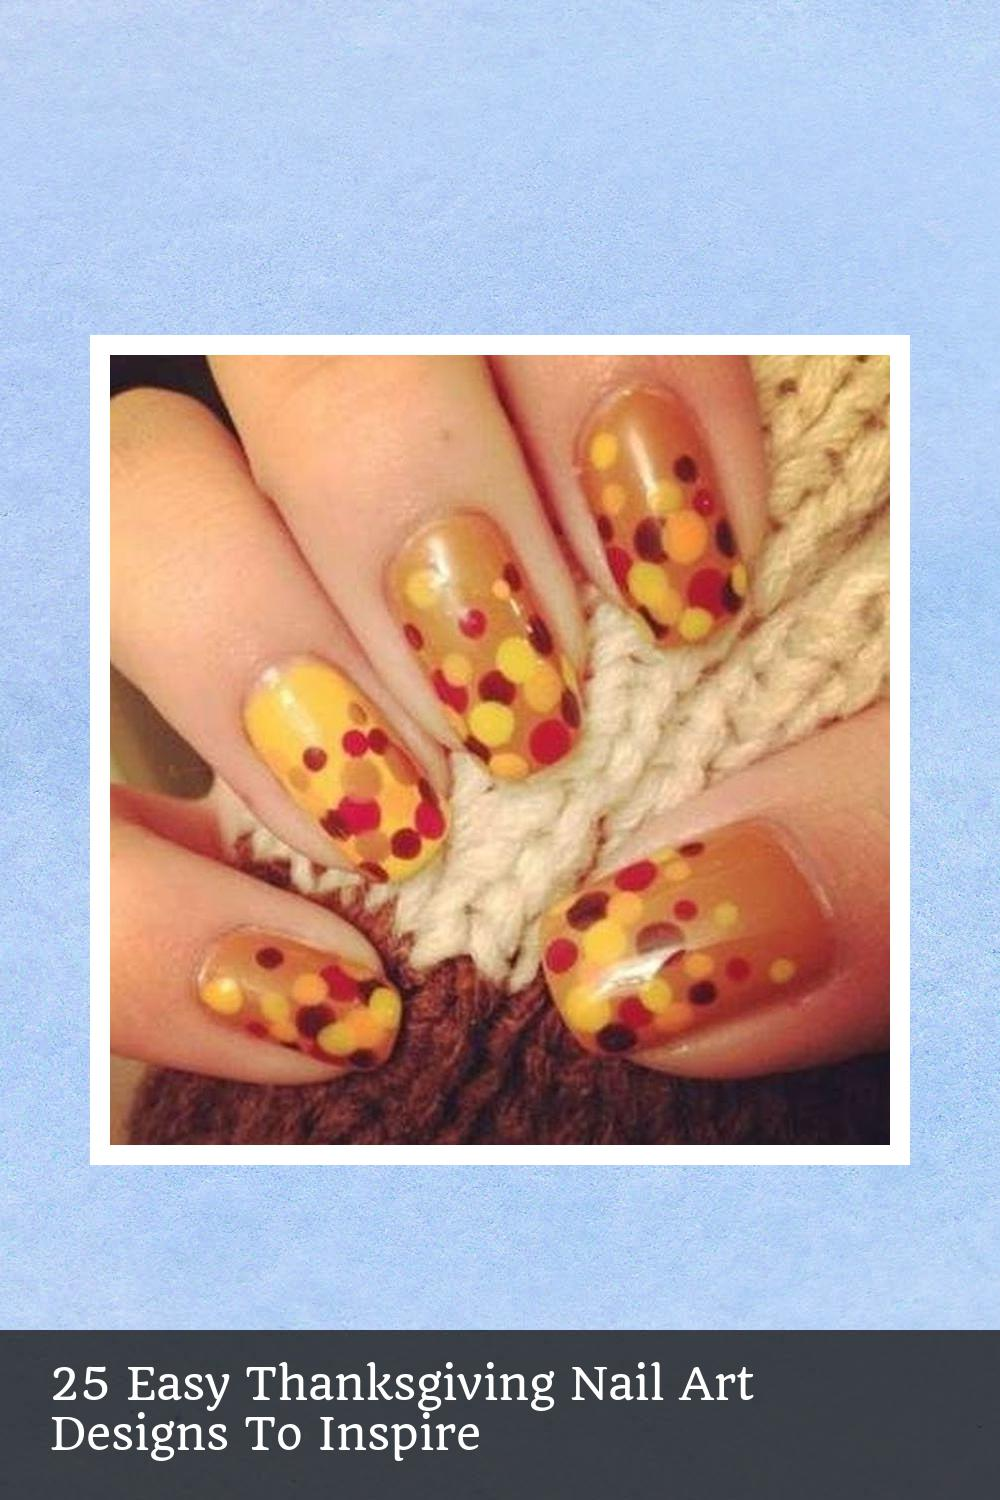 25 Easy Thanksgiving Nail Art Designs To Inspire 9